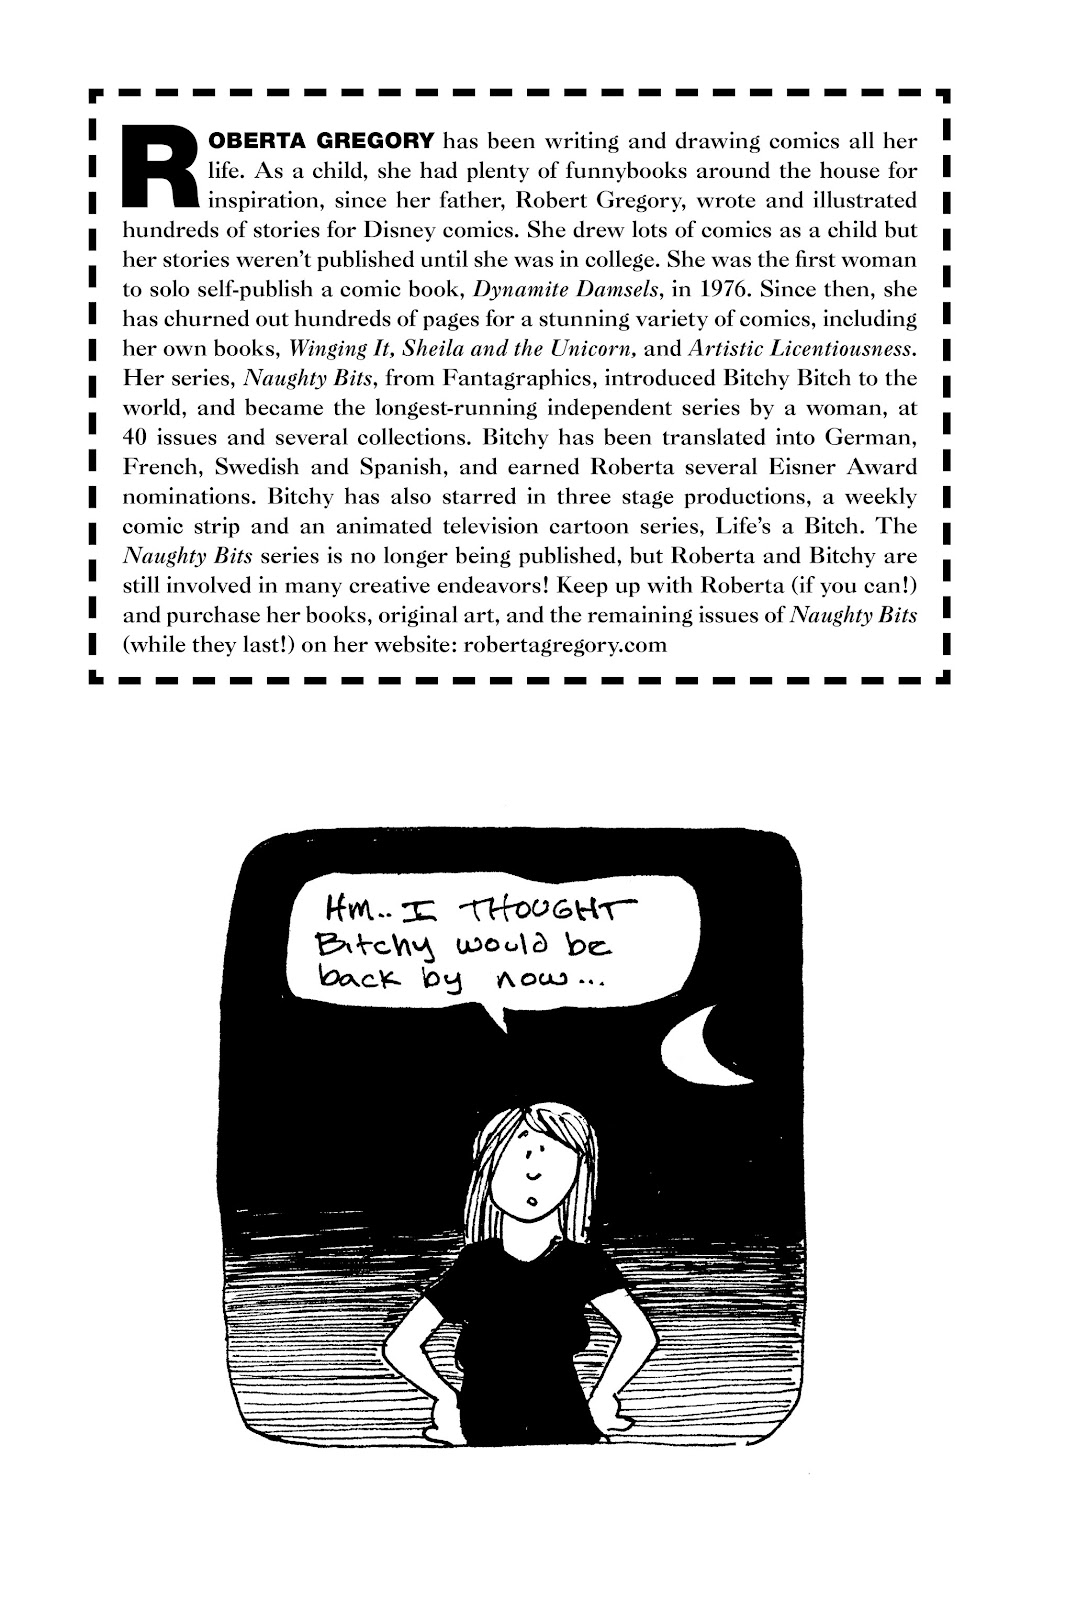 Read online Life's a Bitch: The Complete Bitchy Bitch Stories comic -  Issue # TPB (Part 3) - 66